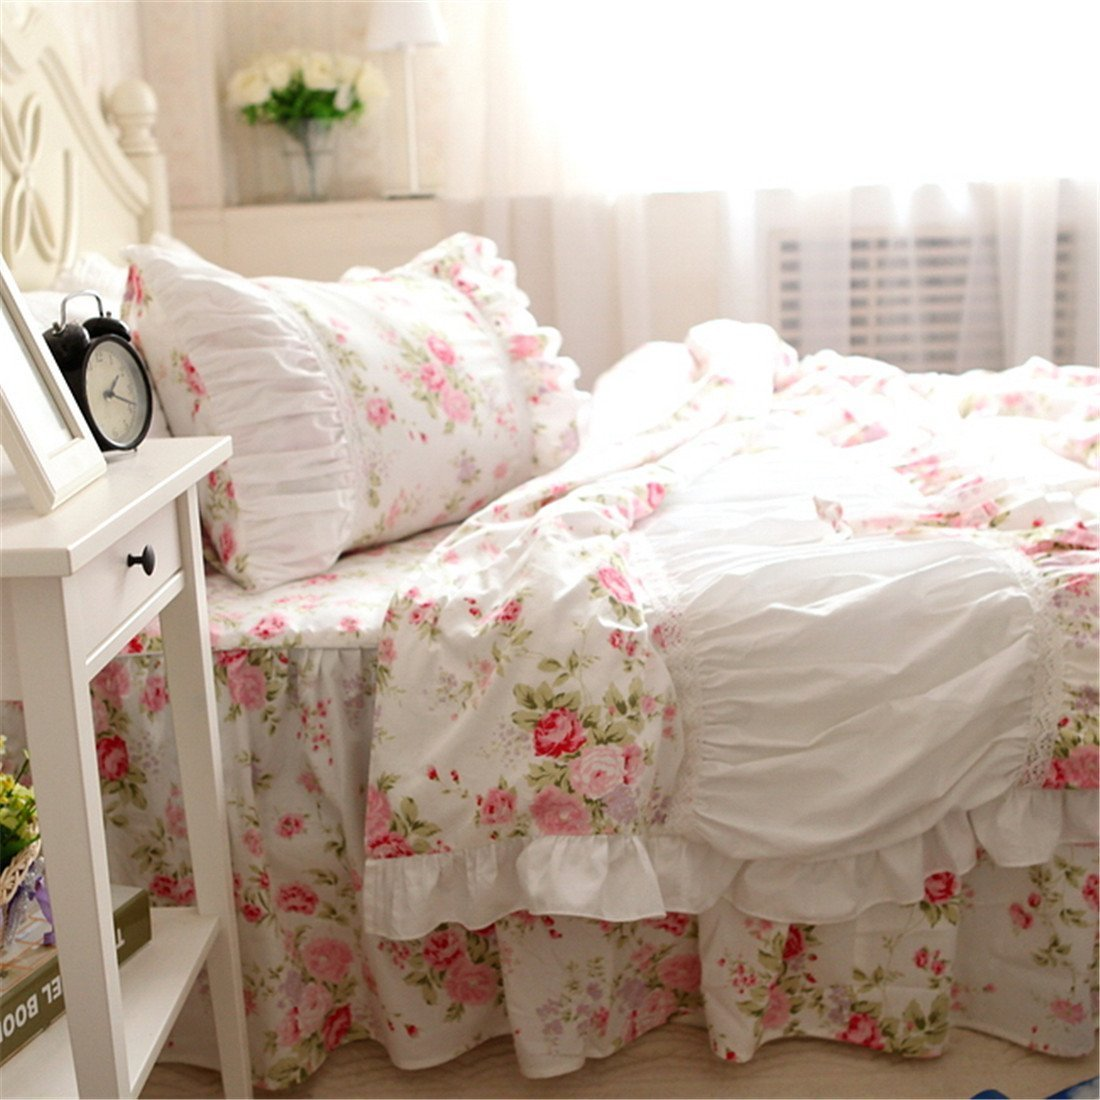 FADFAY Cotton Bedding,Shabby Rose Floral Print Bedding Set,Elegant Country Style Ruffles Cute Girls Duvet Cover Bed Sets with Lace Twin Size by FADFAY